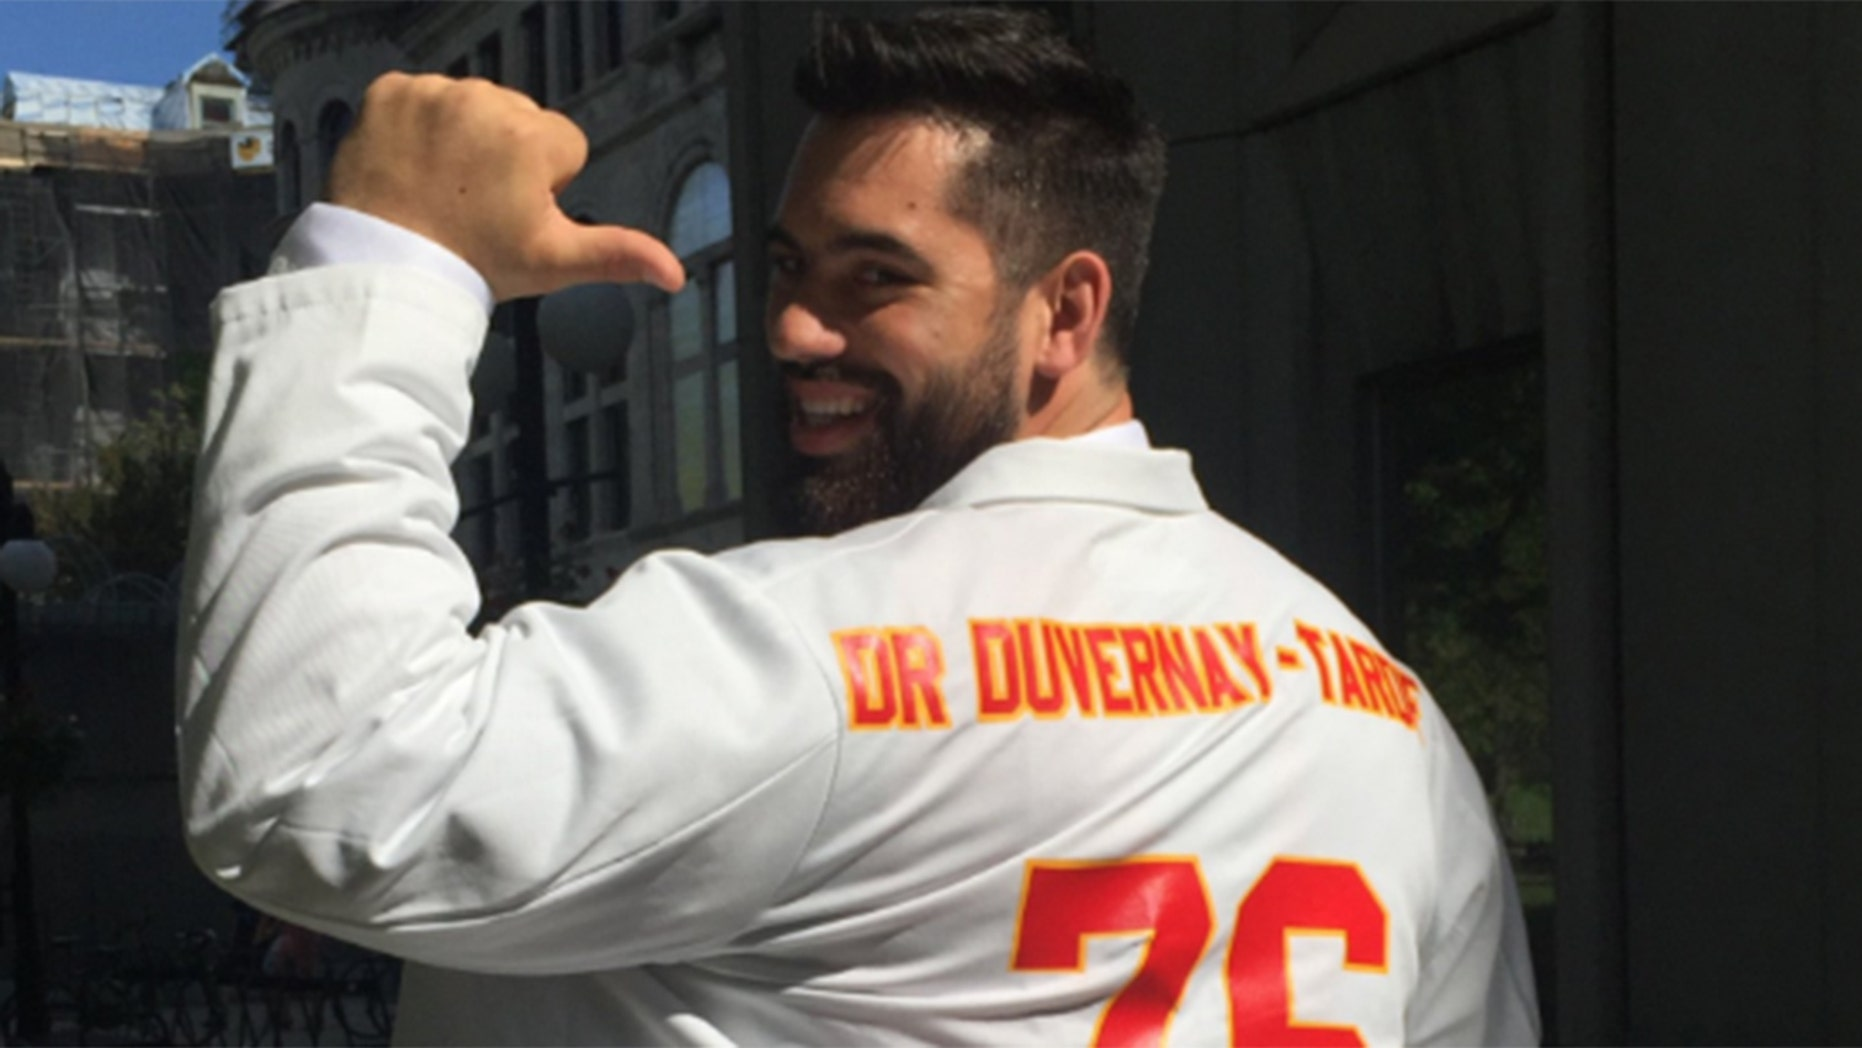 Duvernay-Tardif is now the first active NFL player to also hold a medical degree.